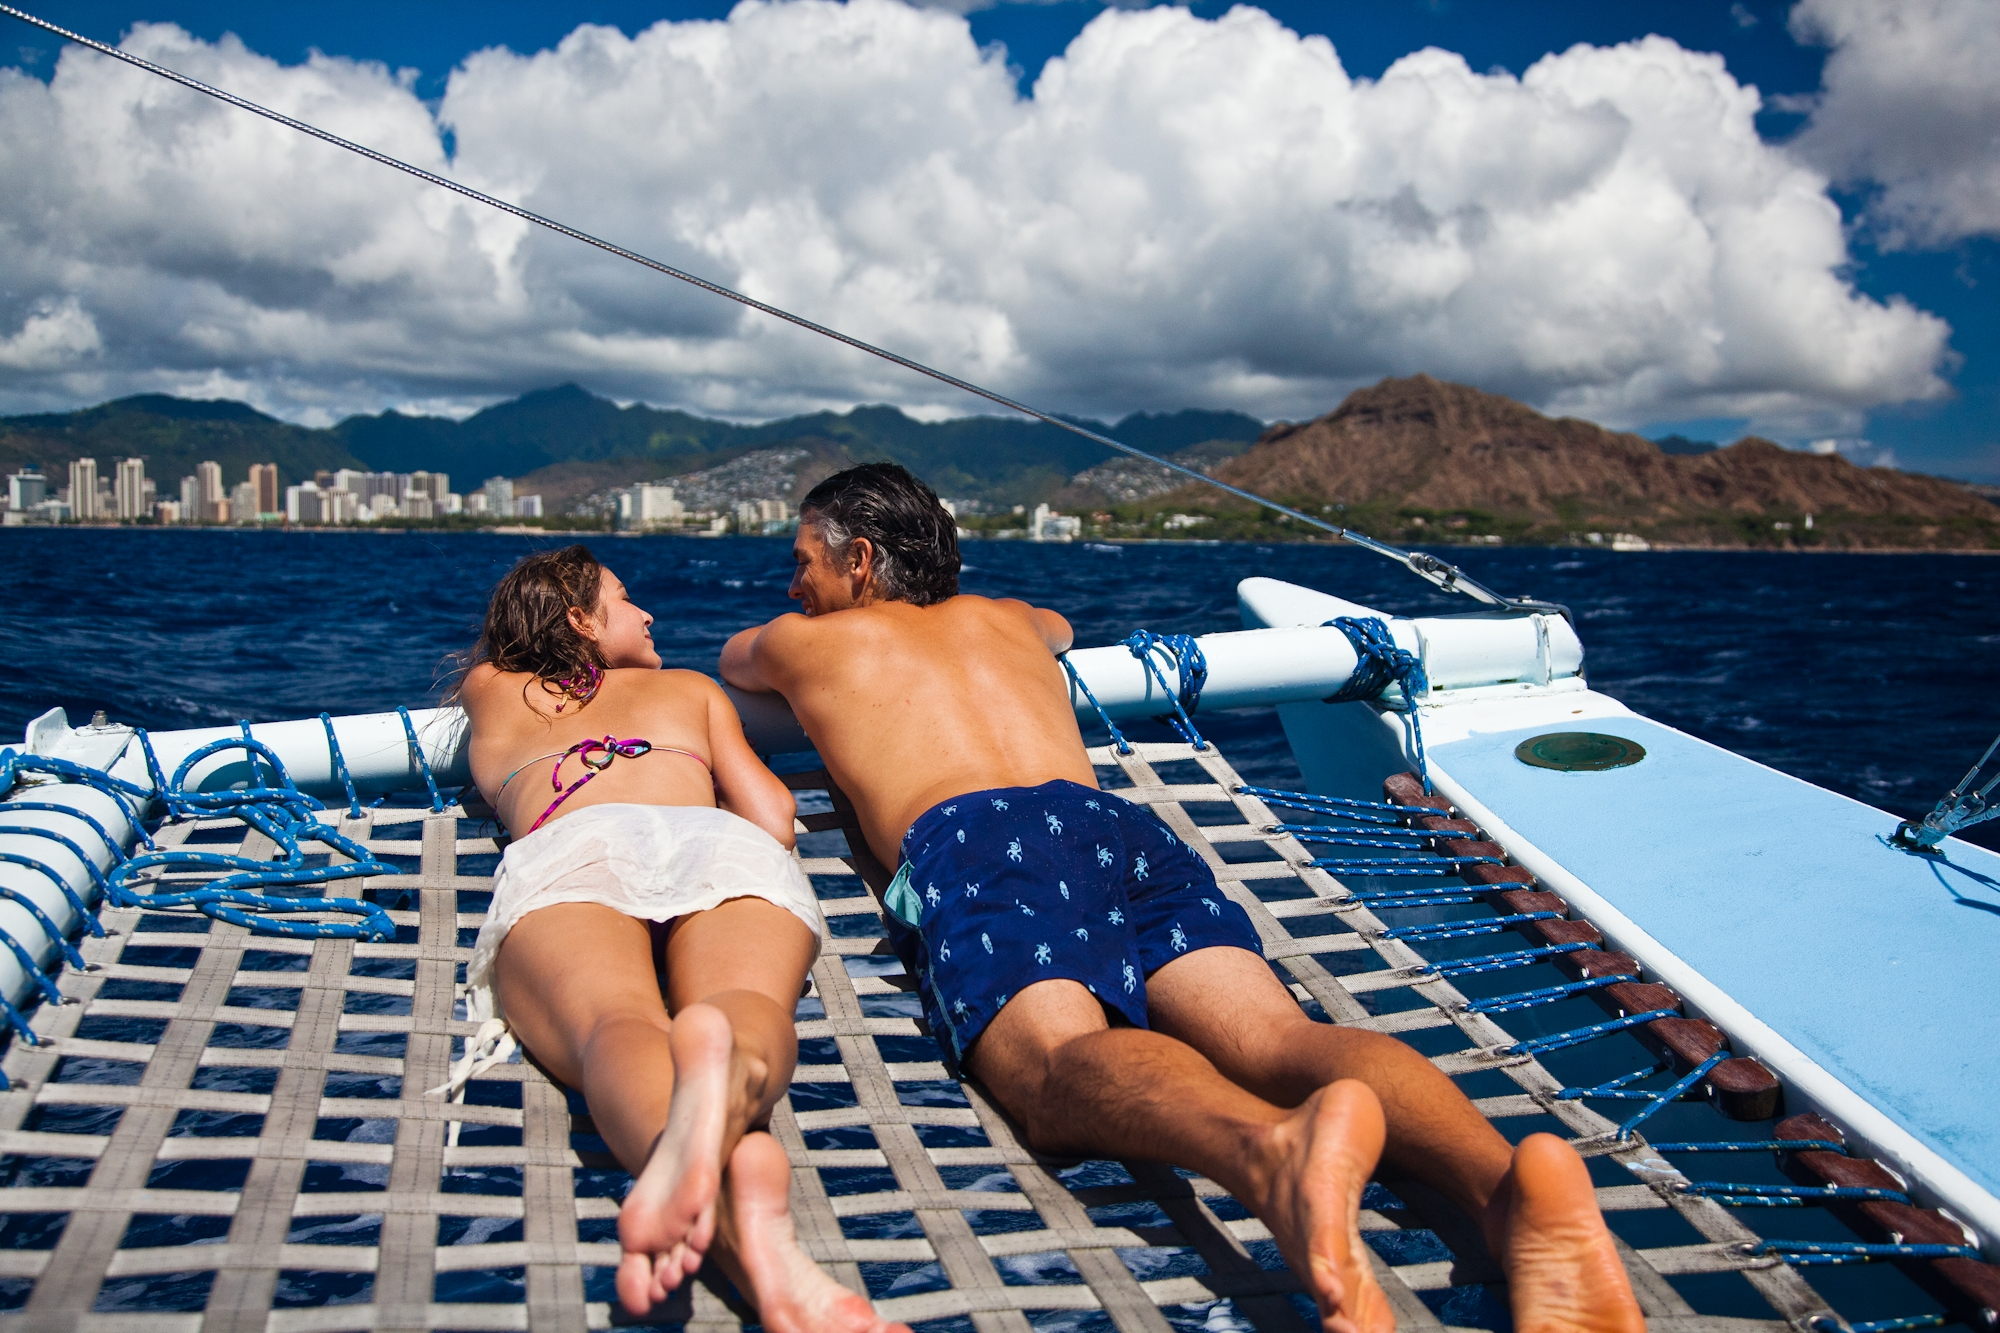 Hawaii-Tourism-Sunbaking-Catamaran